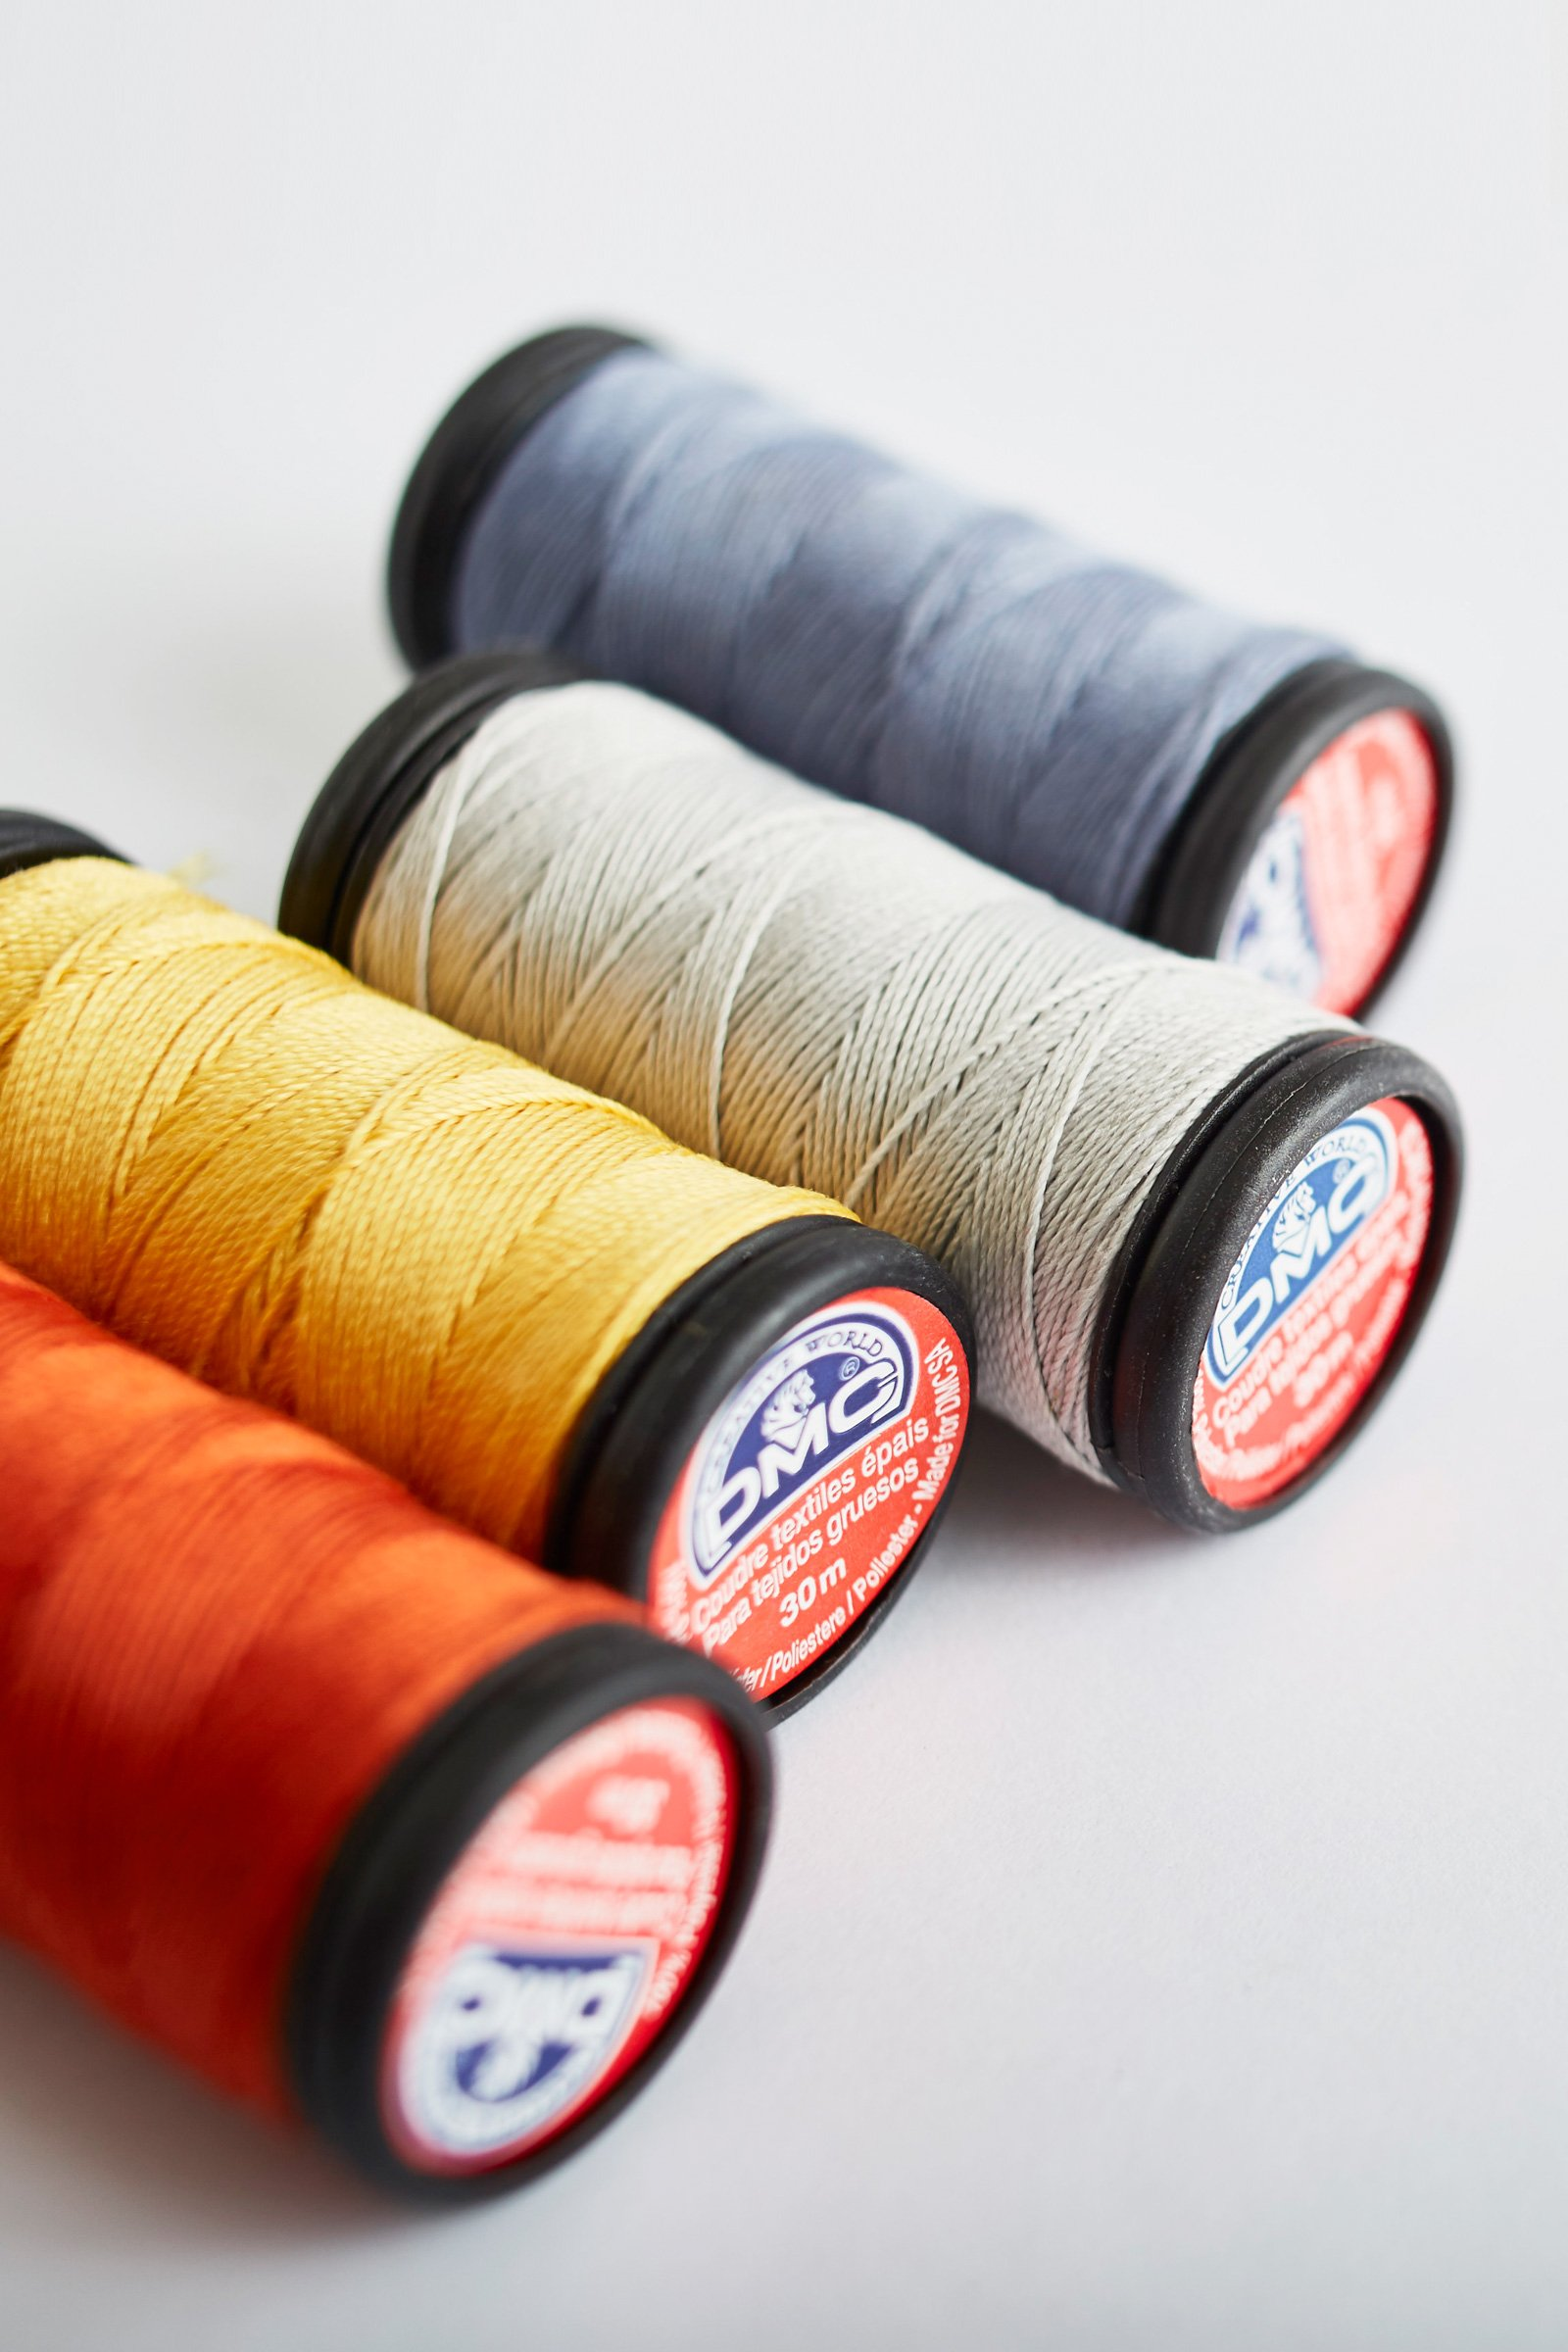 Sewing thread 100% polyester 30m